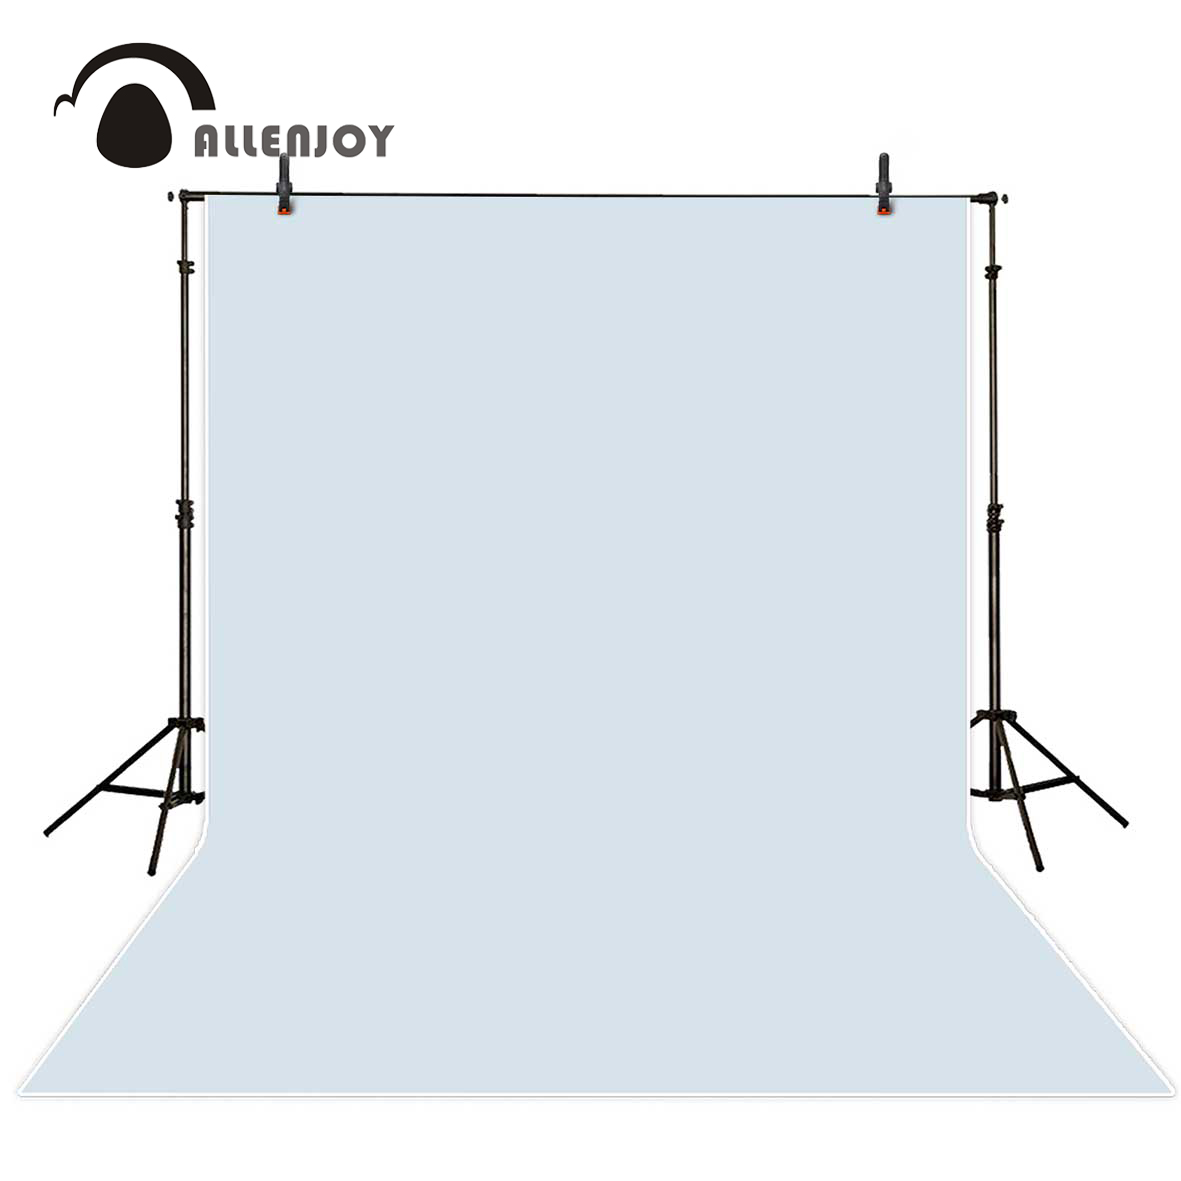 Allenjoy photographic background Solid Gray Pure Color photo backdrop professional portrait Photography studio prop vinyl fabric